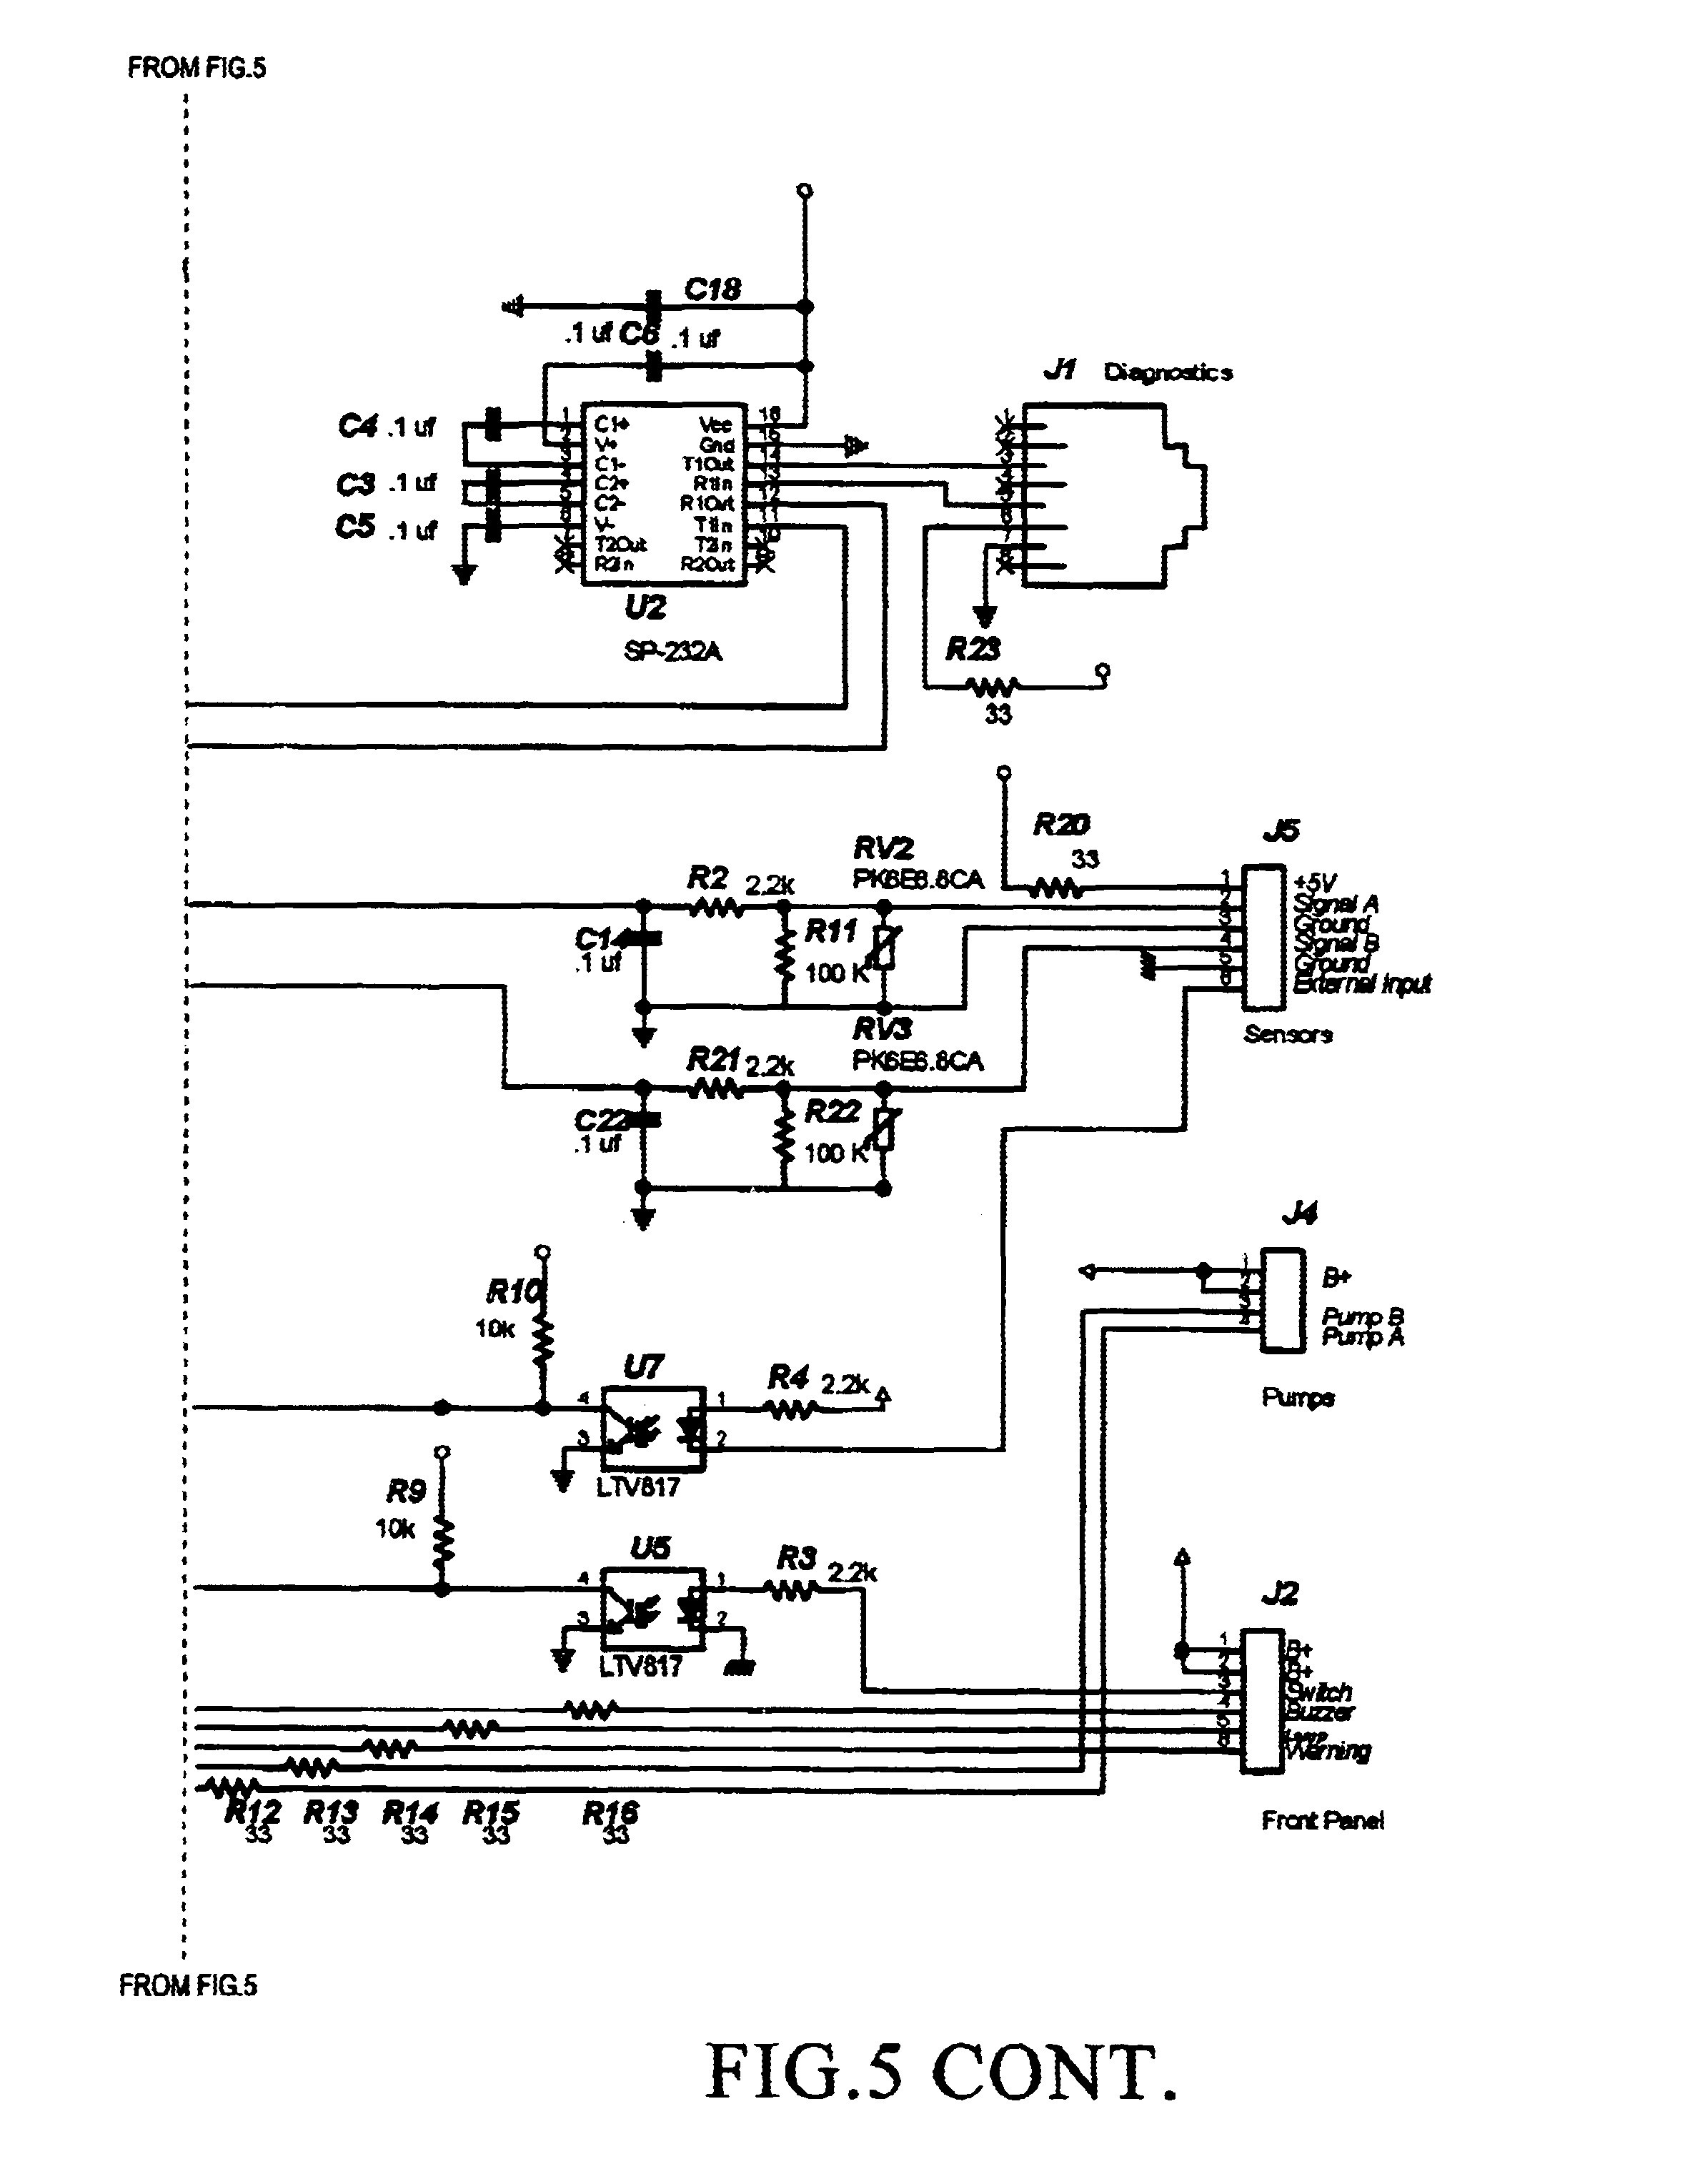 Wiring Diagram for Float Switch Fresh Septic Tank Float Switch Wiring Diagram Download